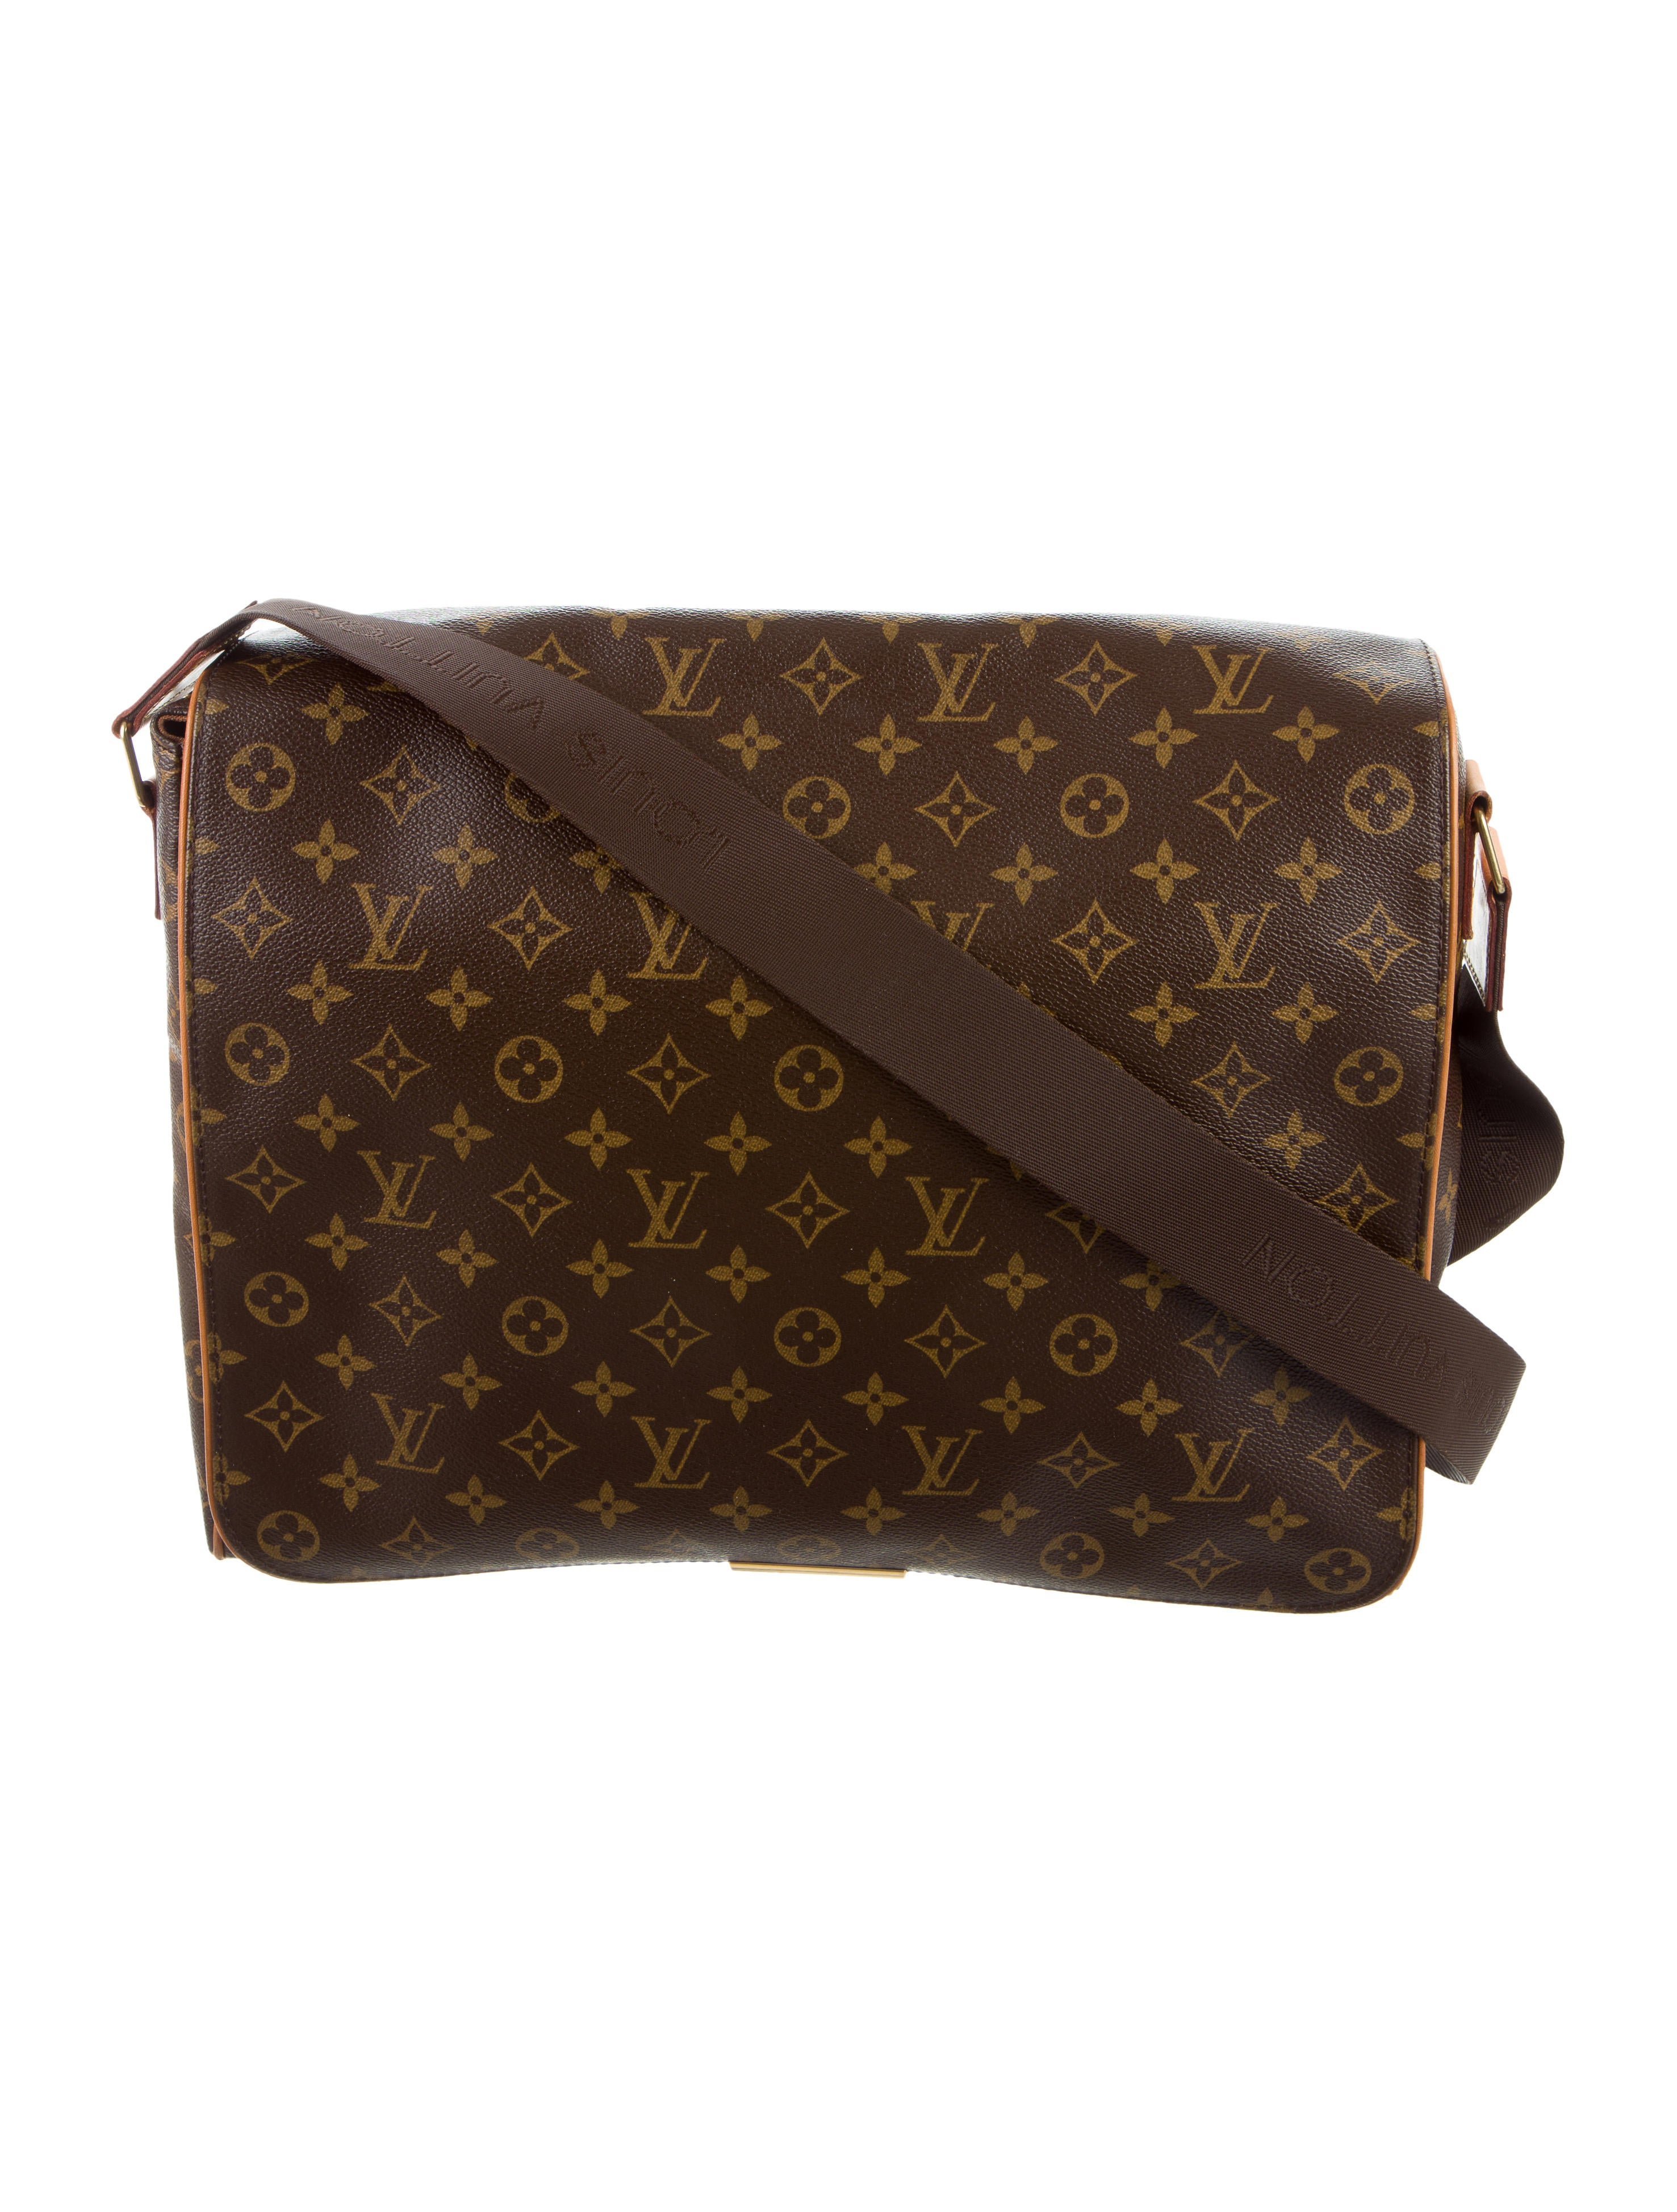 Wonderful Vuitton Veered Urban Chic Wednesday With A Collection Of Mostly Messenger Bags Slung Over The Shoulder And Across The Chest, They Came In Denim, In Patent Leather, And In The Signature LV Logo, Just To Name A Few Long Fur Tails Flopped